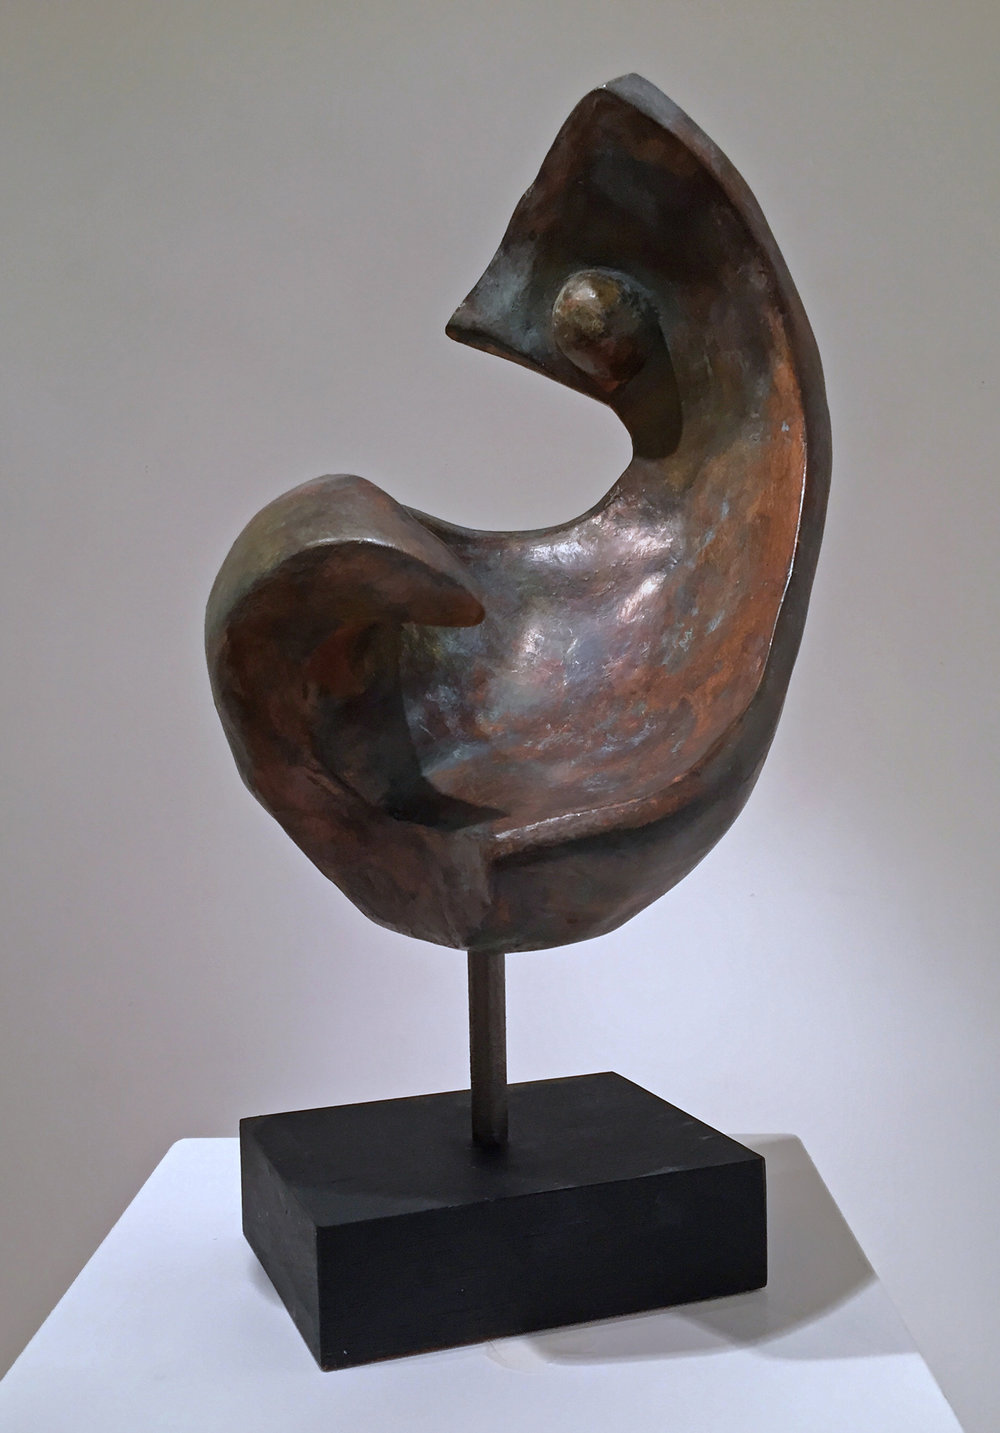 Grace III   Trish Palasik  Resin Cast with Brushed Patina  $900   Click here to inquire.